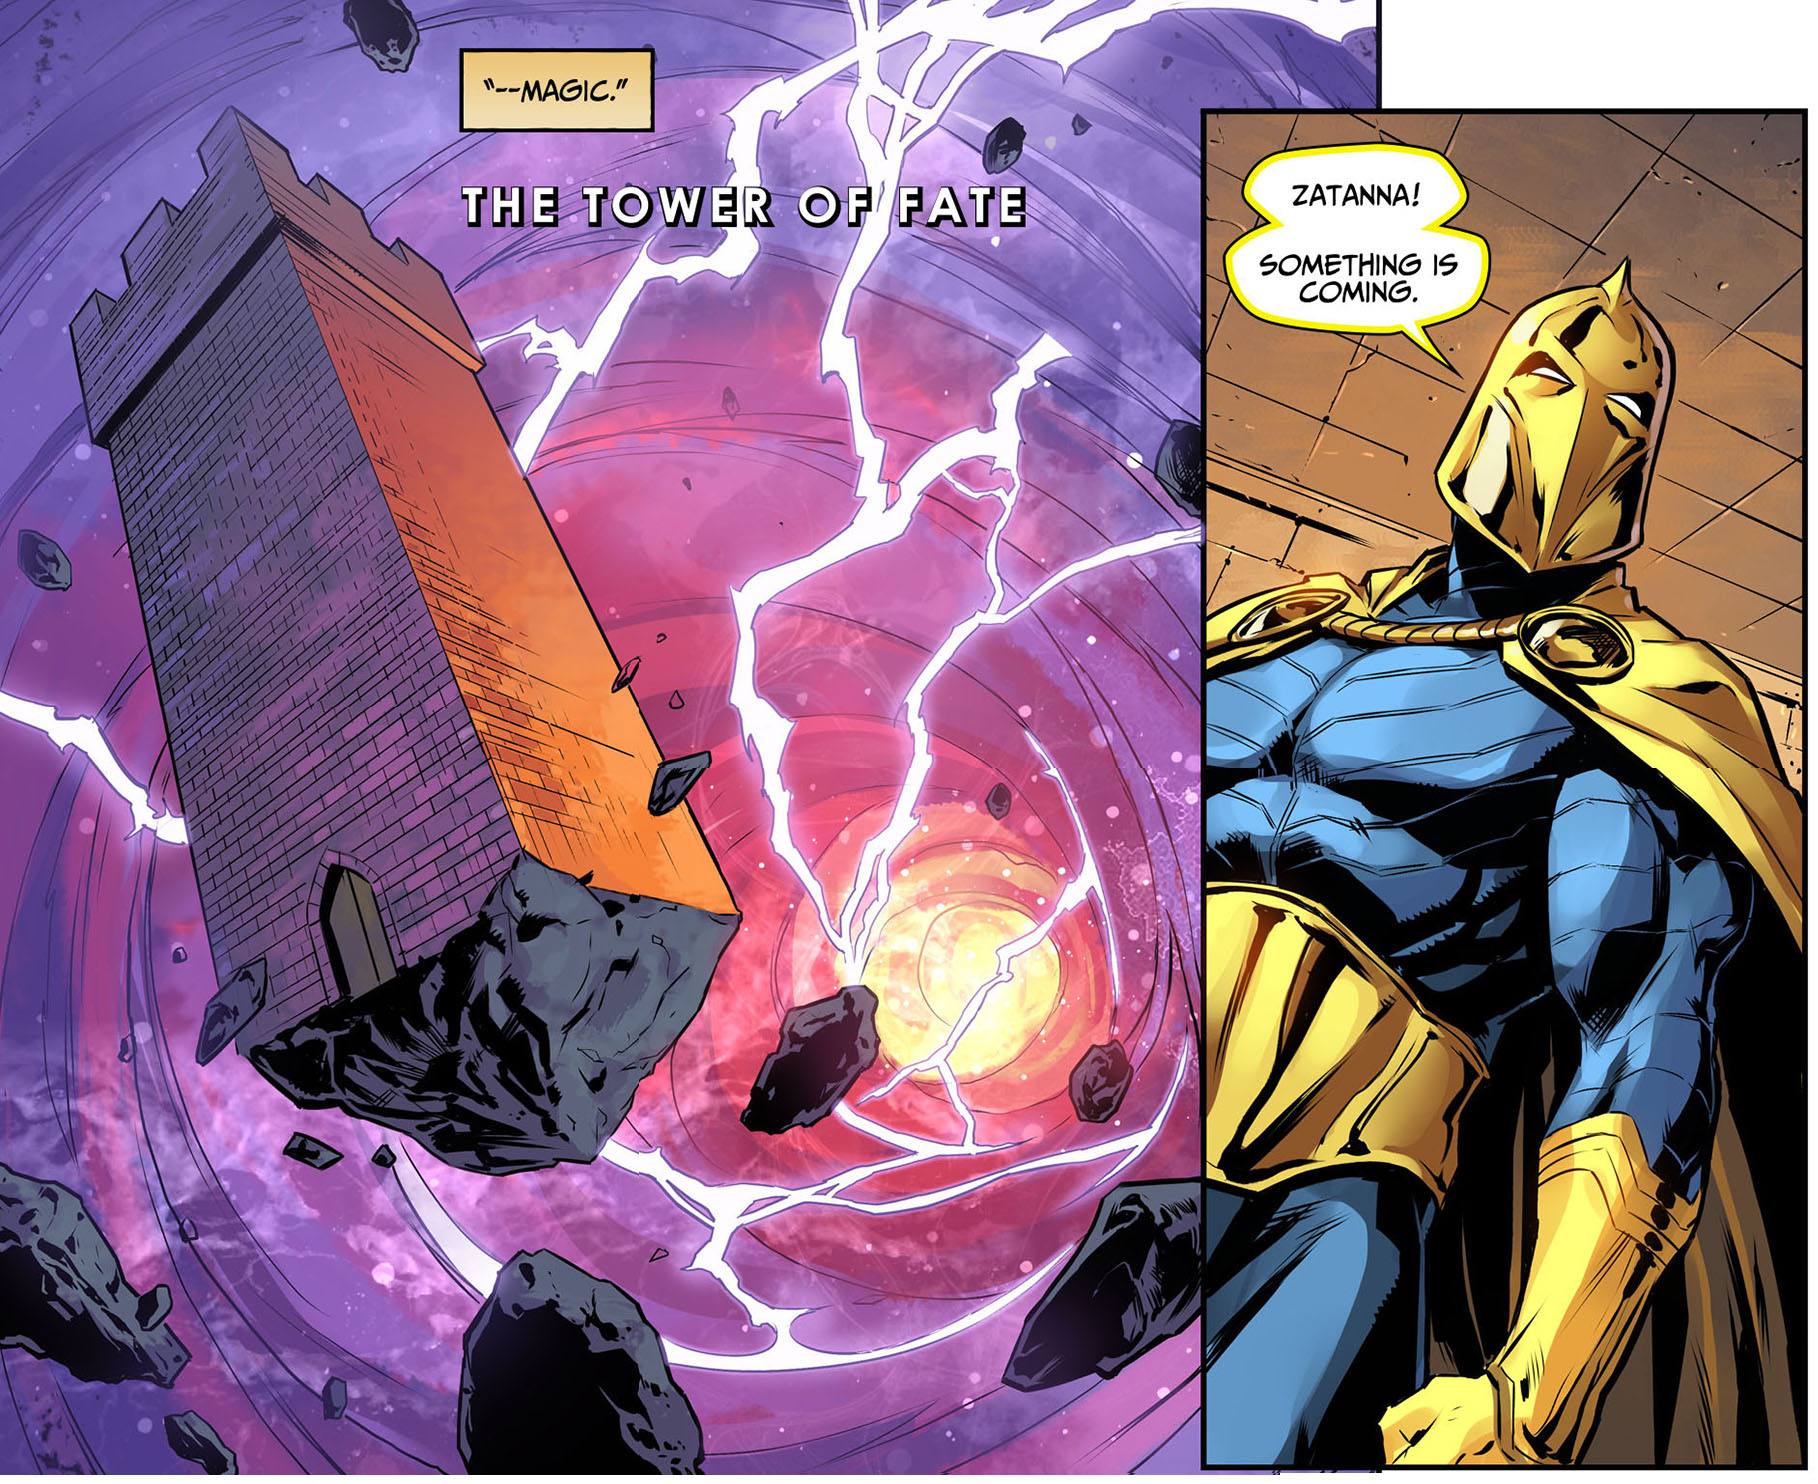 doctor fate (injustice)